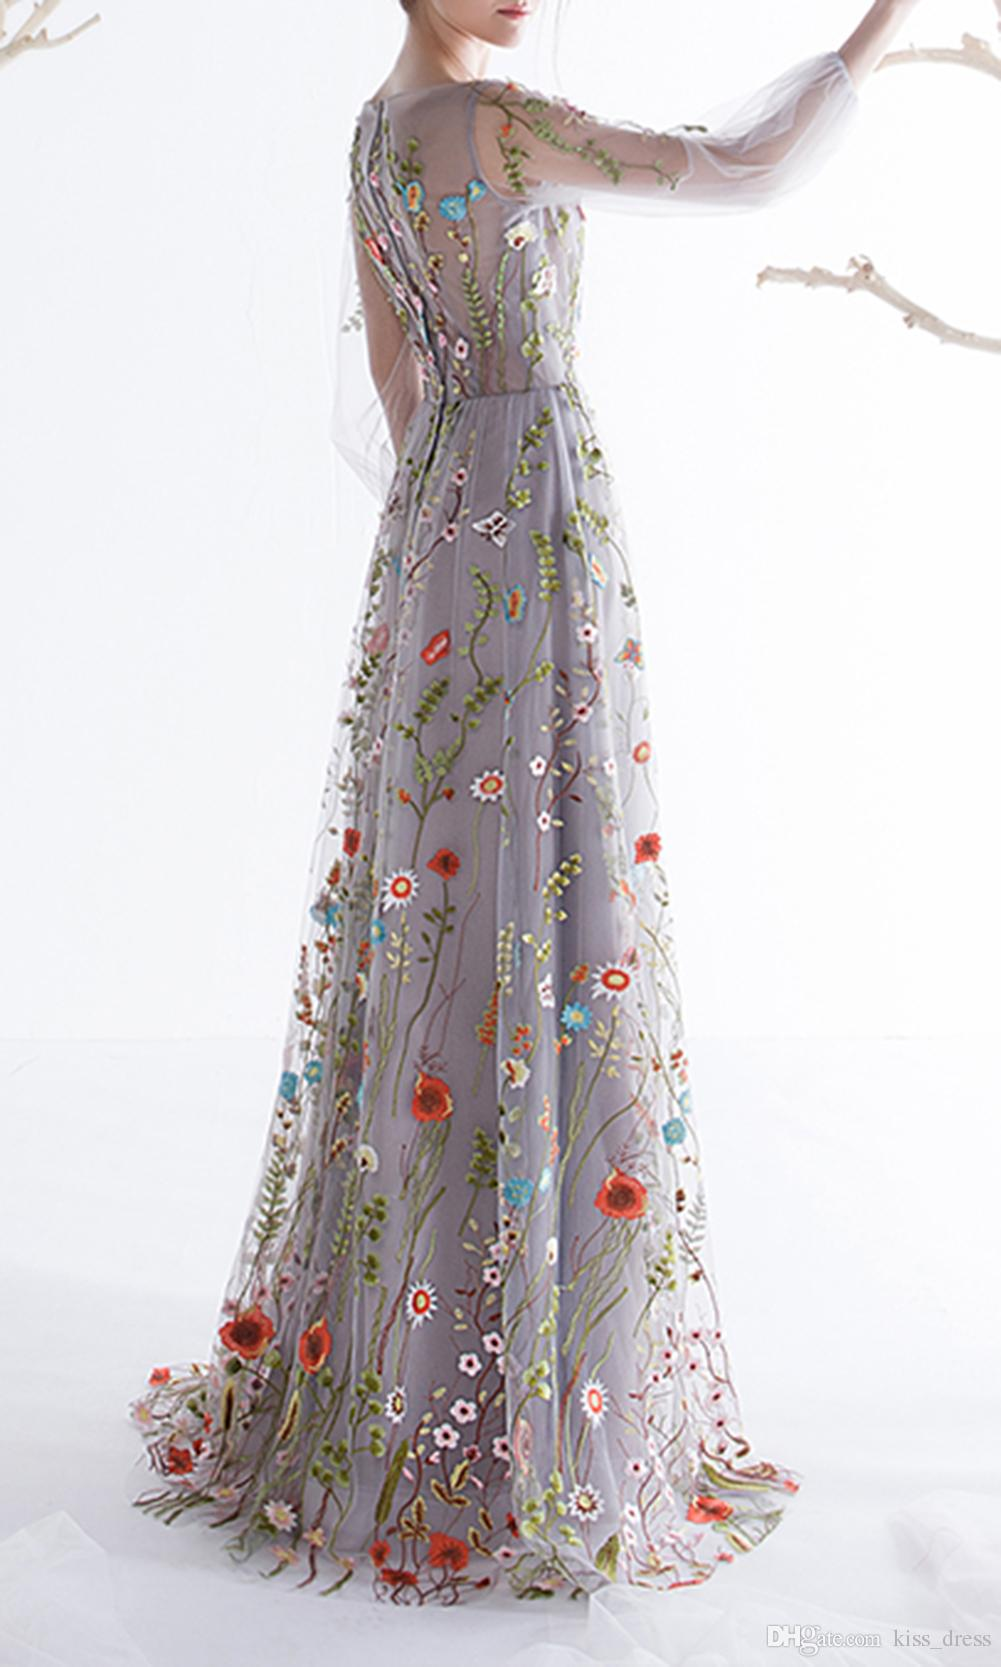 New Design Romantic Floral Prom Dresses ful 3/4 Long Sleeve Tulle A-Line Long Formal Evening Party Gowns Custom Fashionable P120